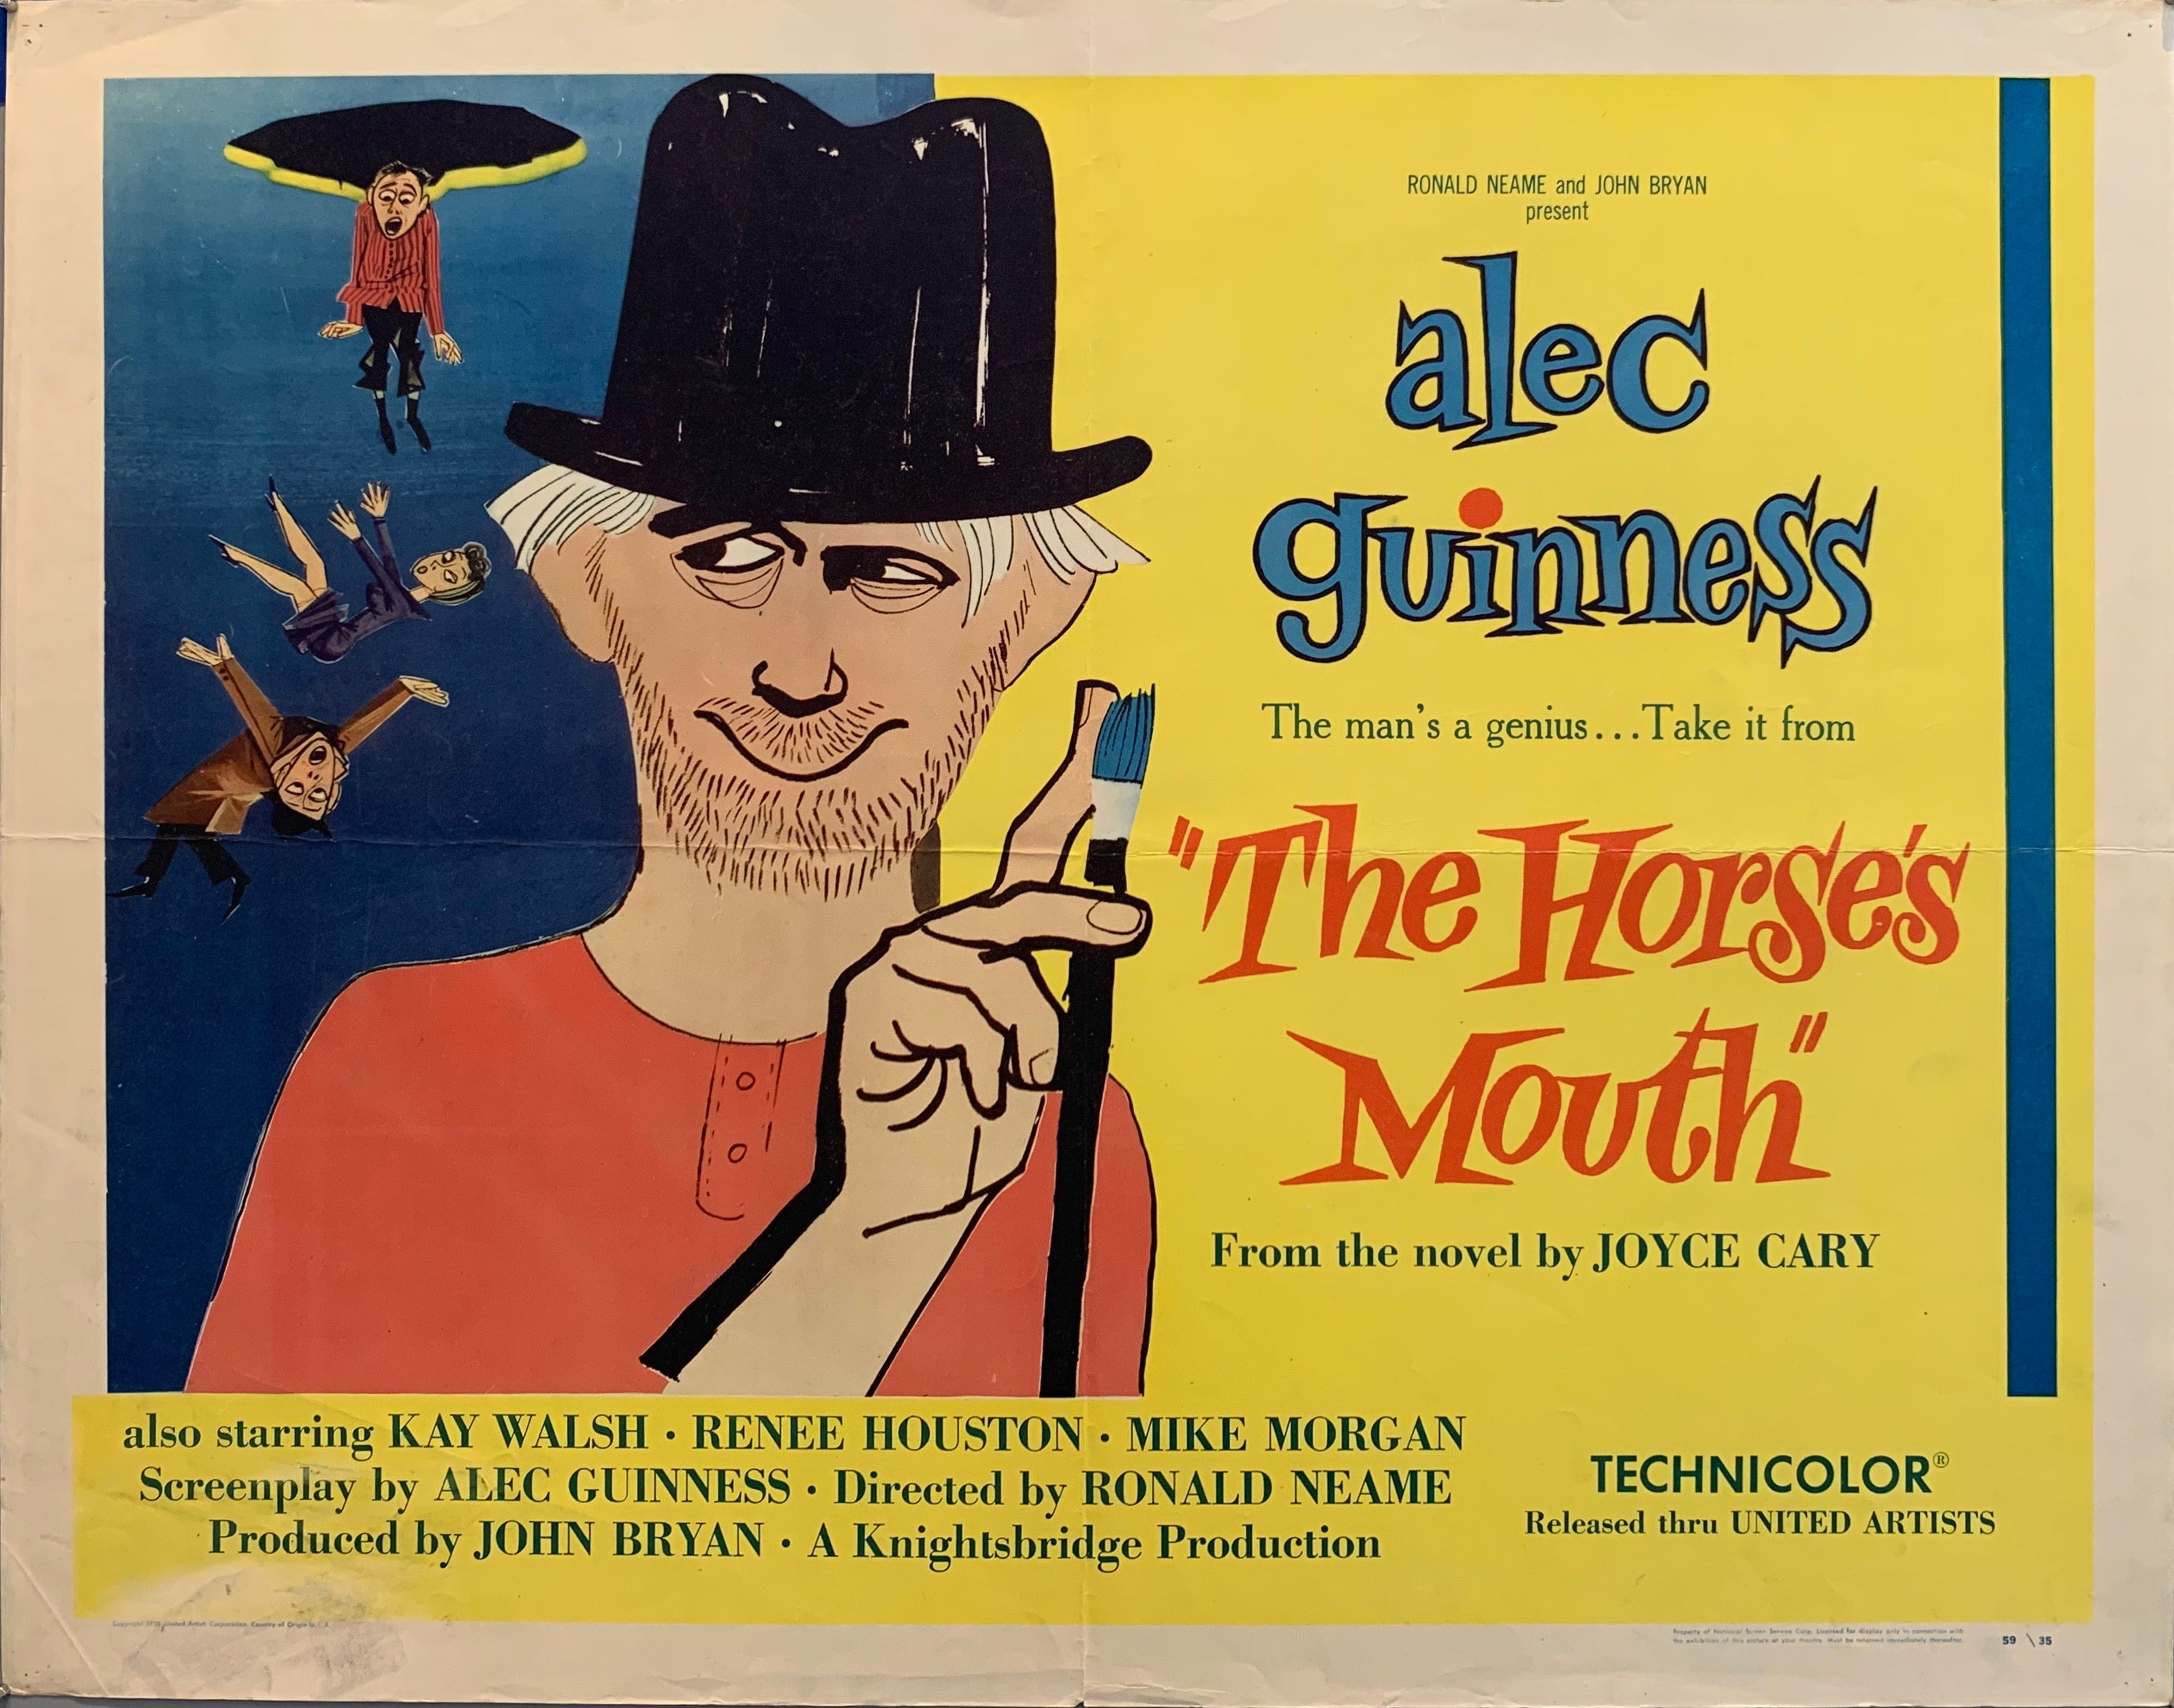 the horses mouth movie poser man holding paintbrush cartoon people falling